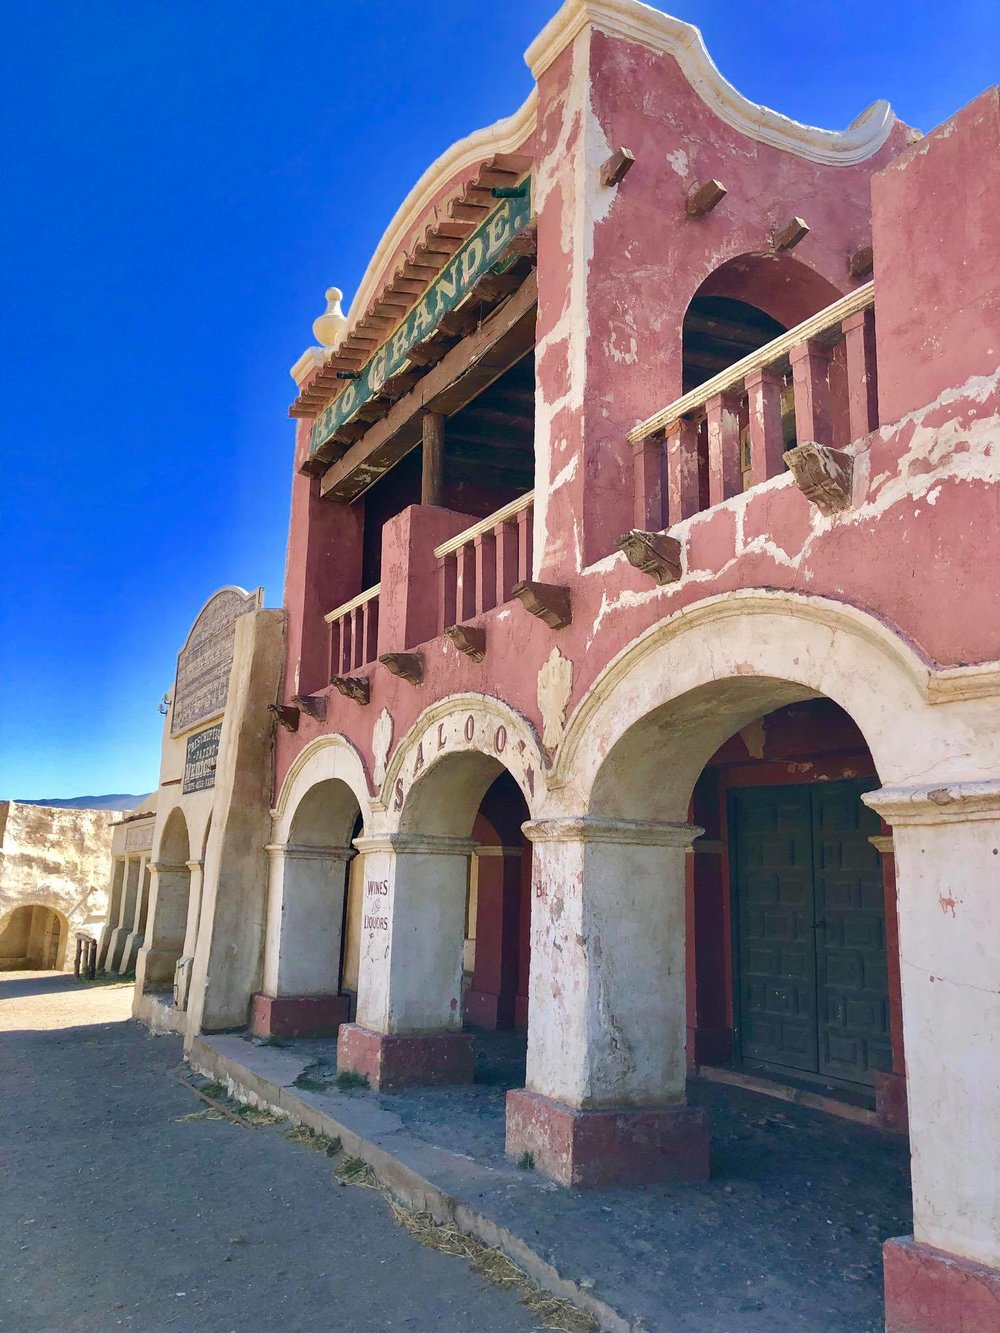 Kach Solo Travels in 2019 Full and fun itinerary here in Almeria, South of Spain2.jpg